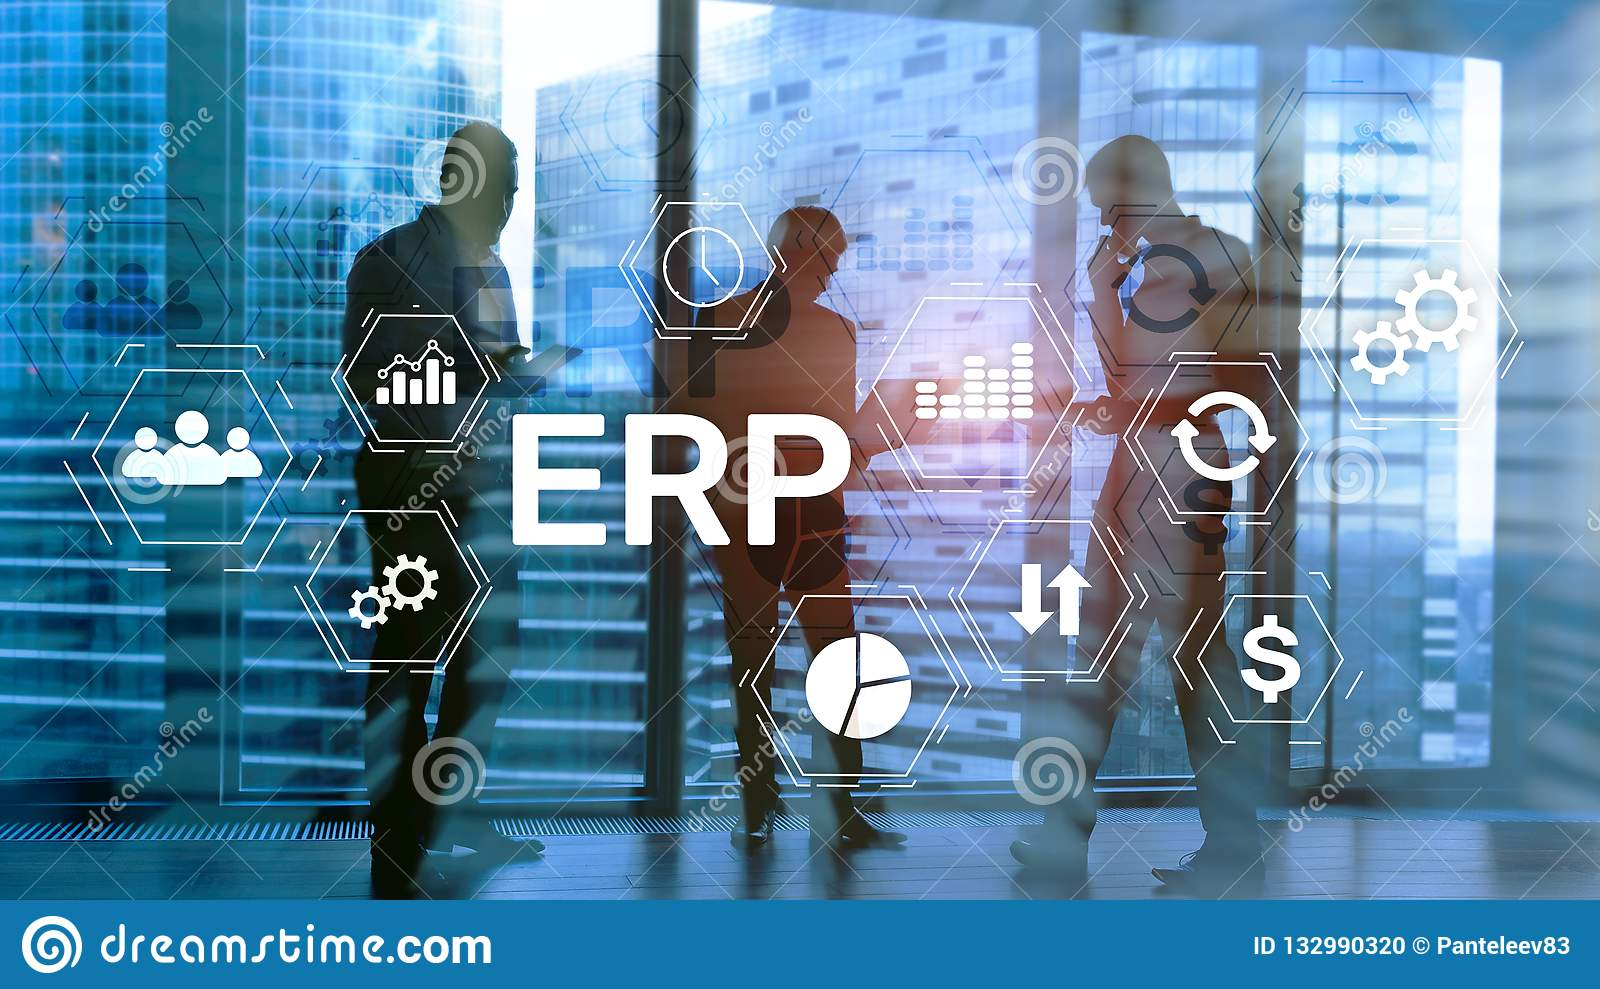 ERP system, Enterprise resource planning on blurred background. Business automation and innovation concept